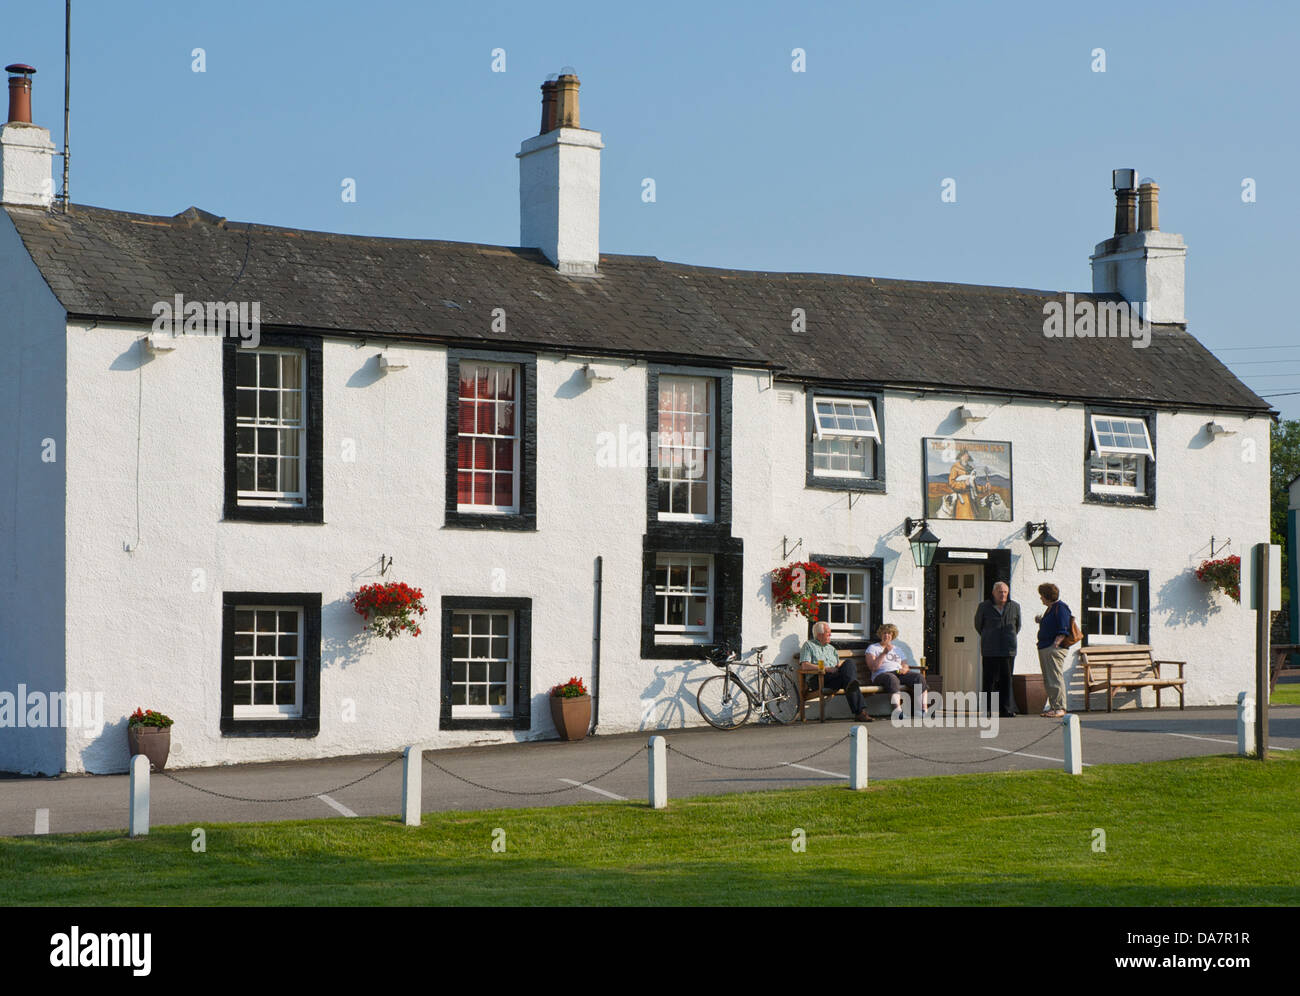 Locals enjoying a drink outside the Shepherds Inn, in the village of Langwathy, Eden Valley, Cumbria, England UK - Stock Image